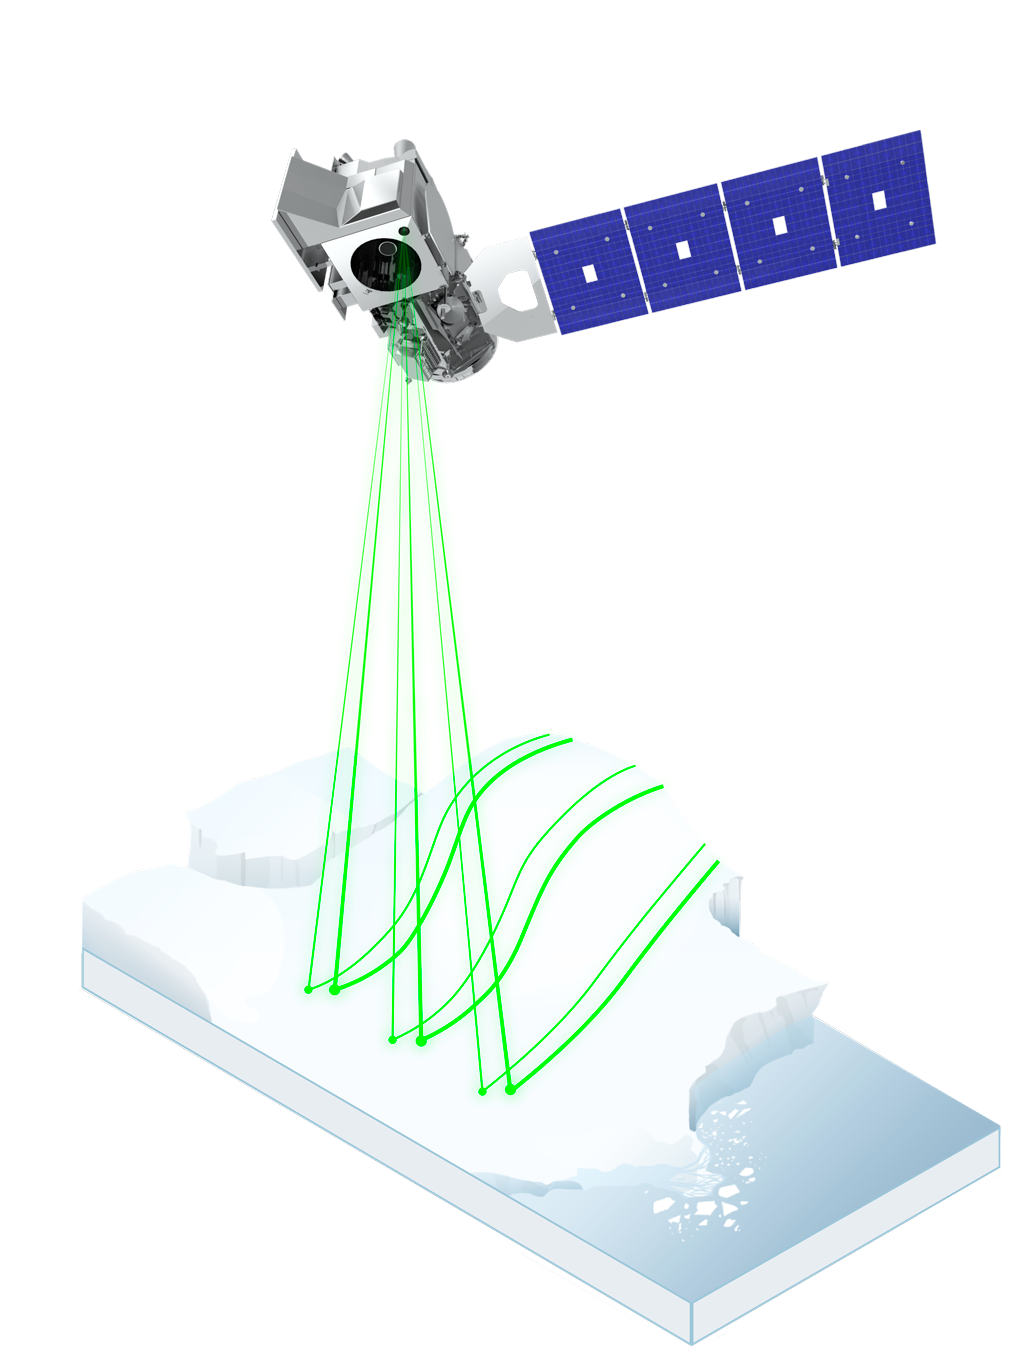 lasers for space instruments essay The laser is known to increase the hydrophobicity of the optical surface it impinges upon the process we see is probably dehydroxylation of the fused silica caused by the laser irradiation [4.